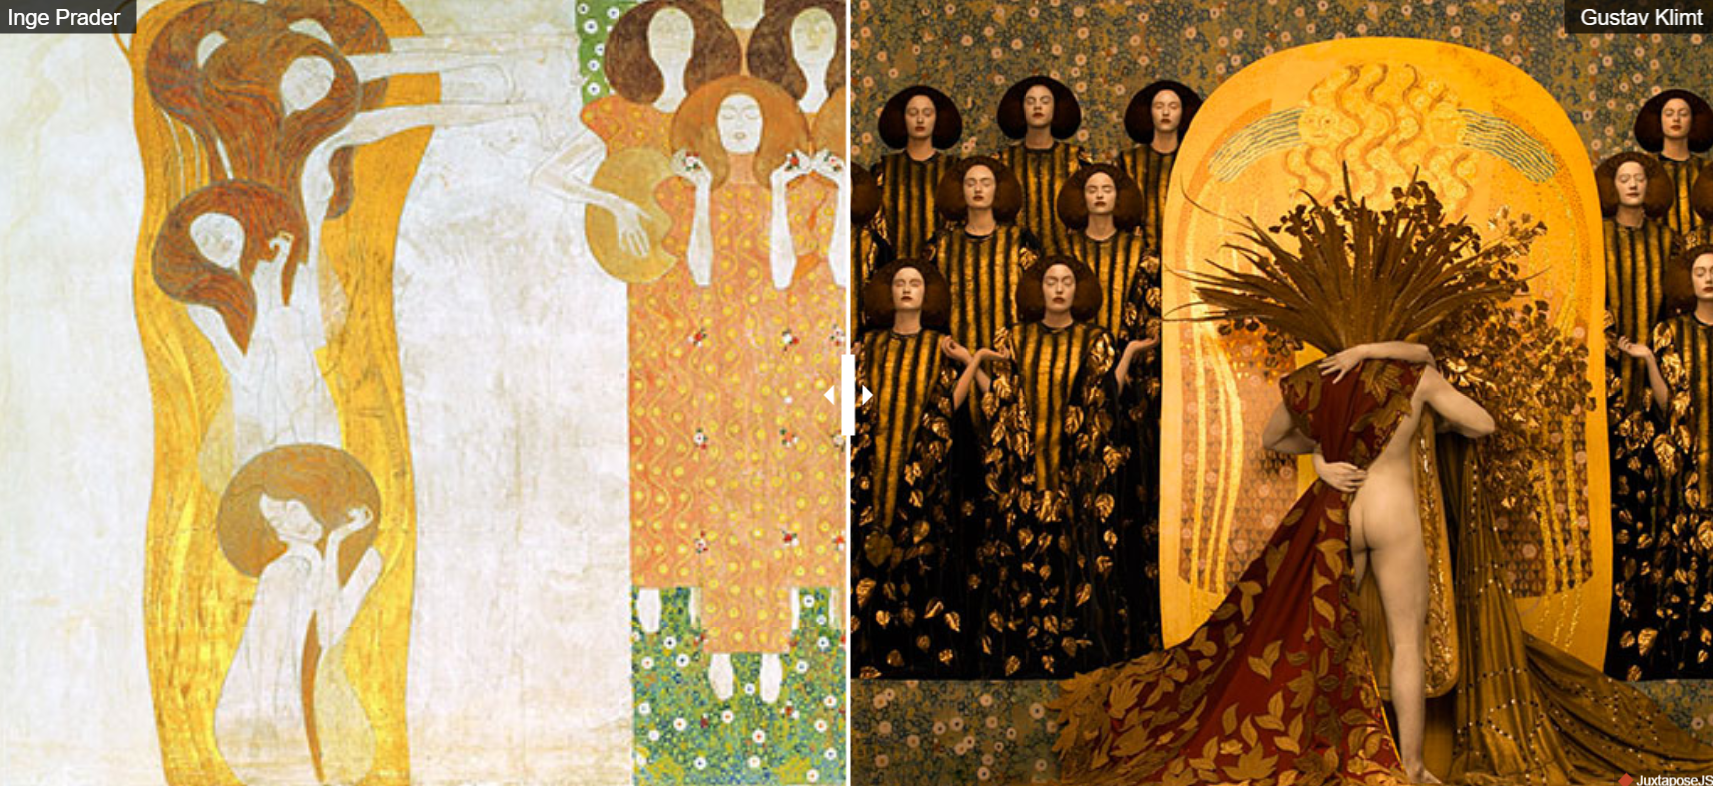 Try out these glittering interactive Gustav Klimt paintings